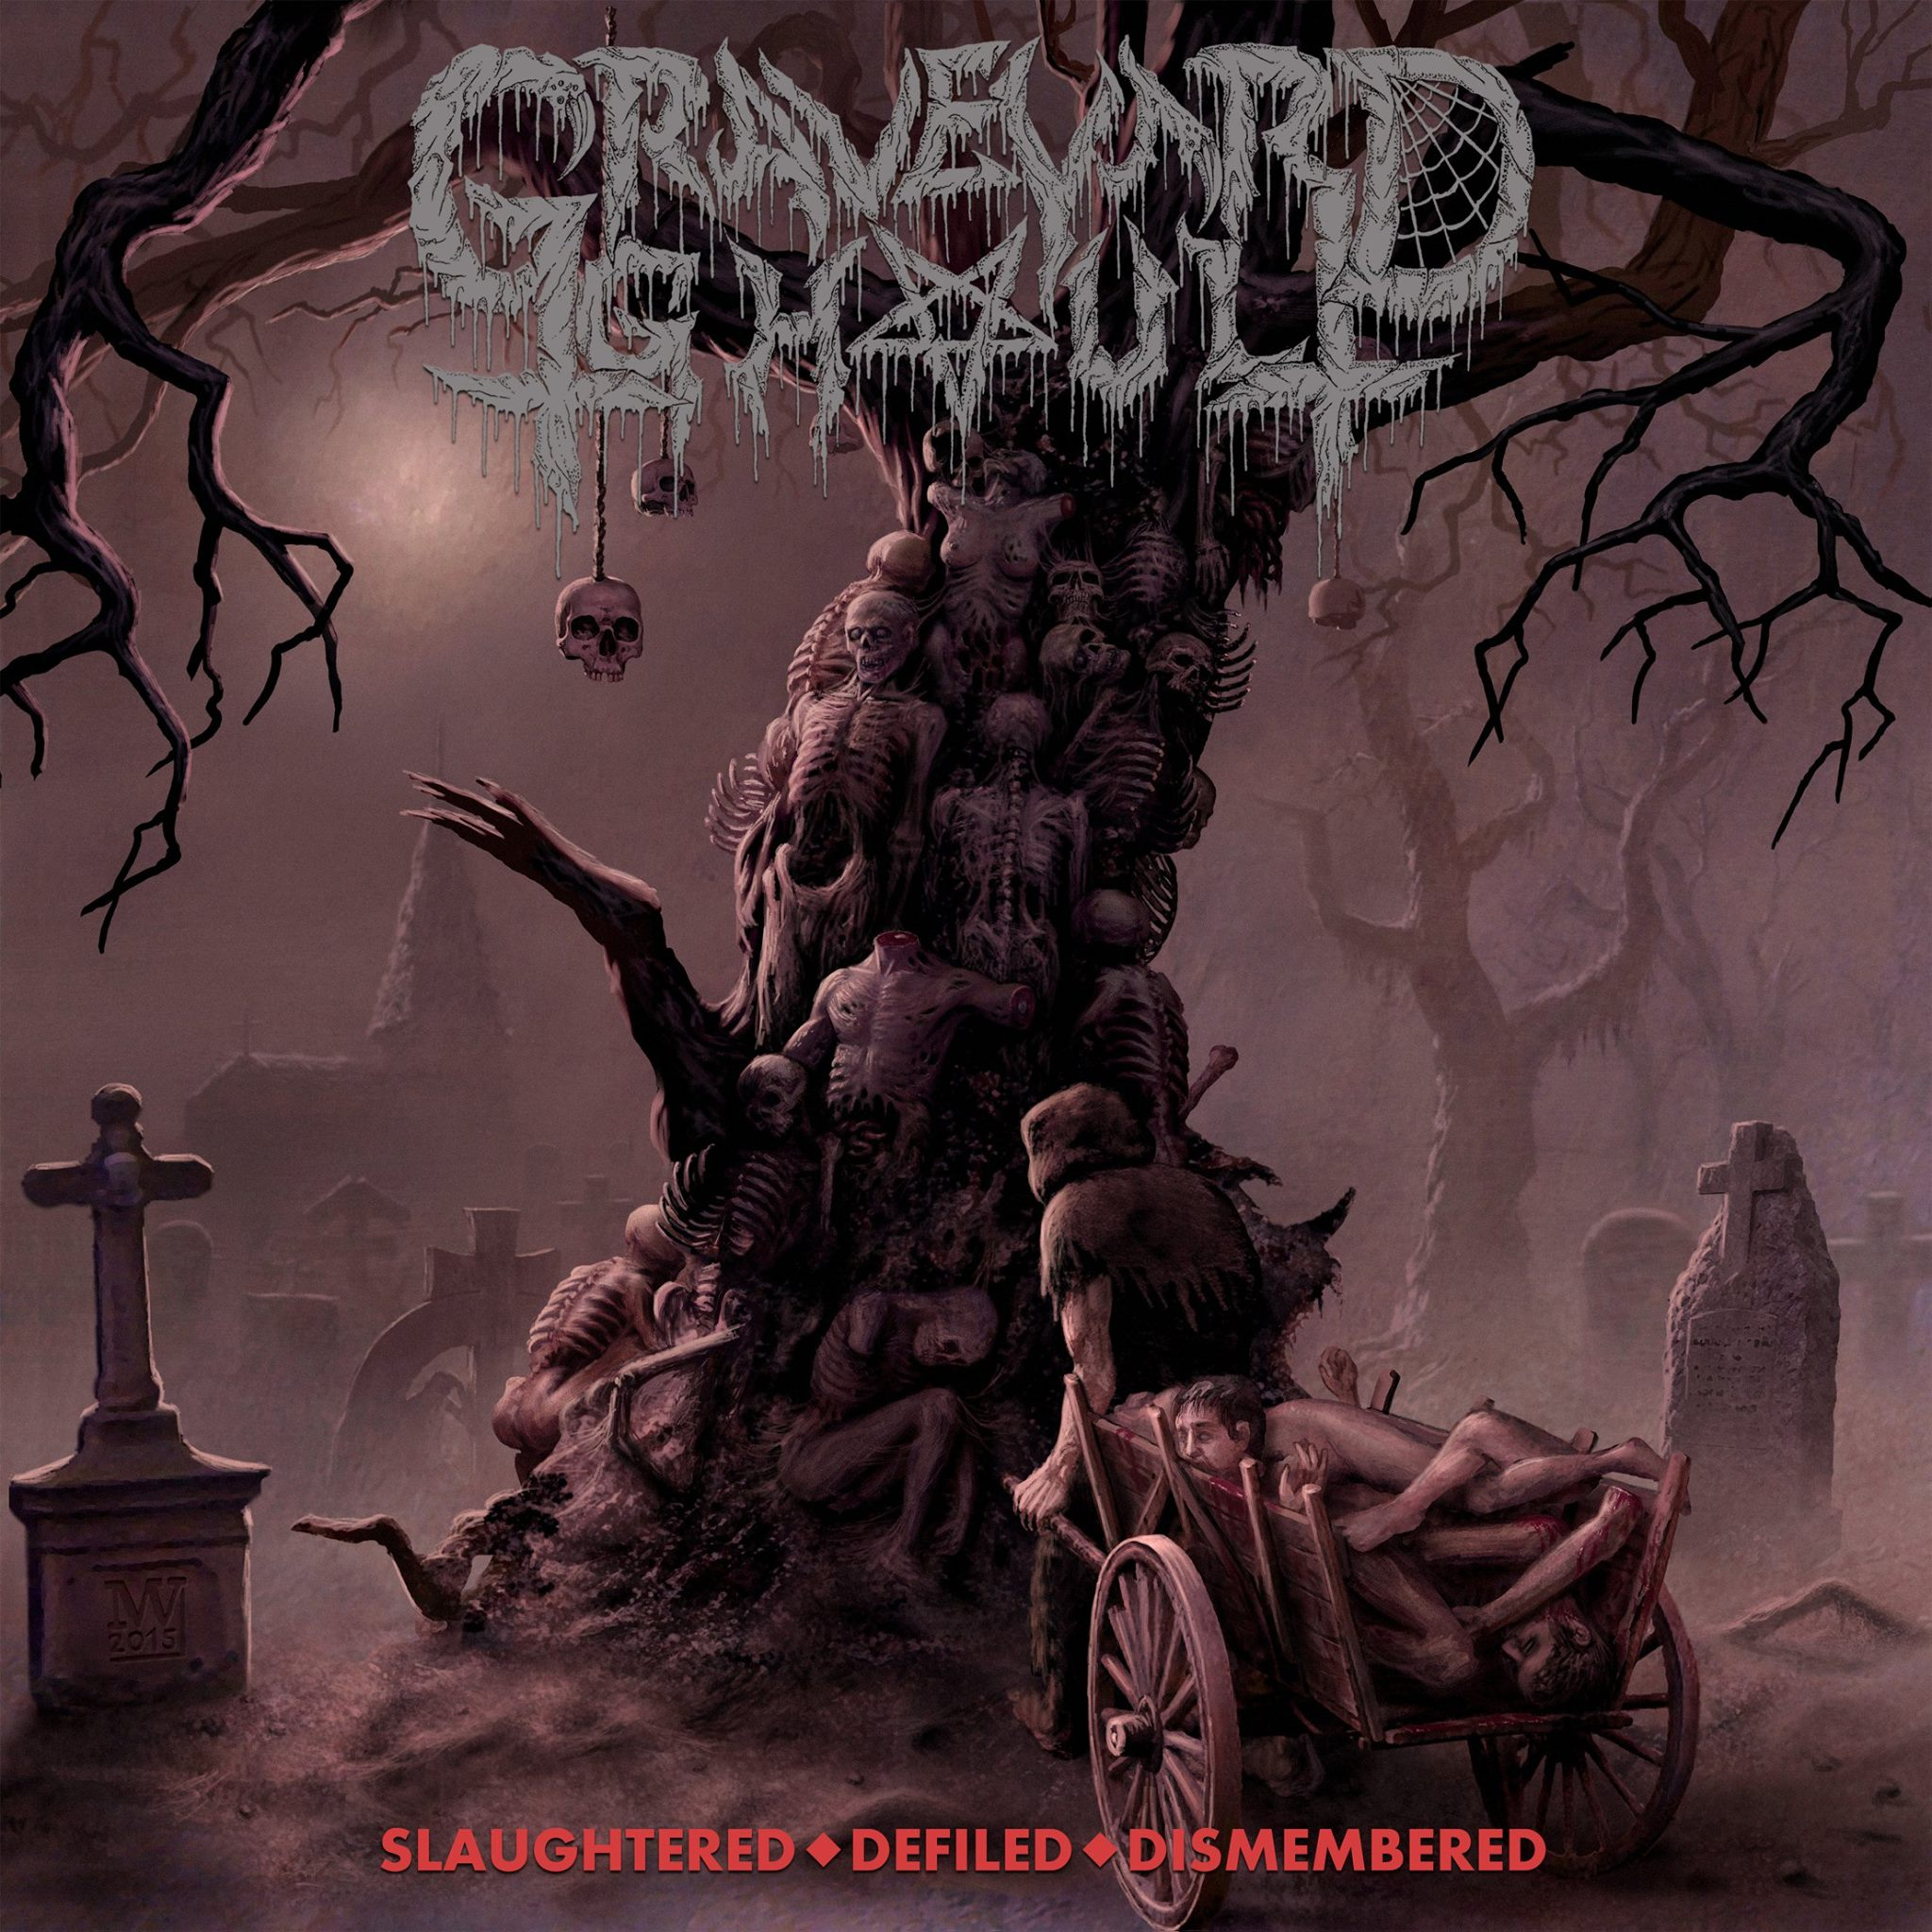 graveyard-ghoul-slaughtered-defiled-dismembered-01